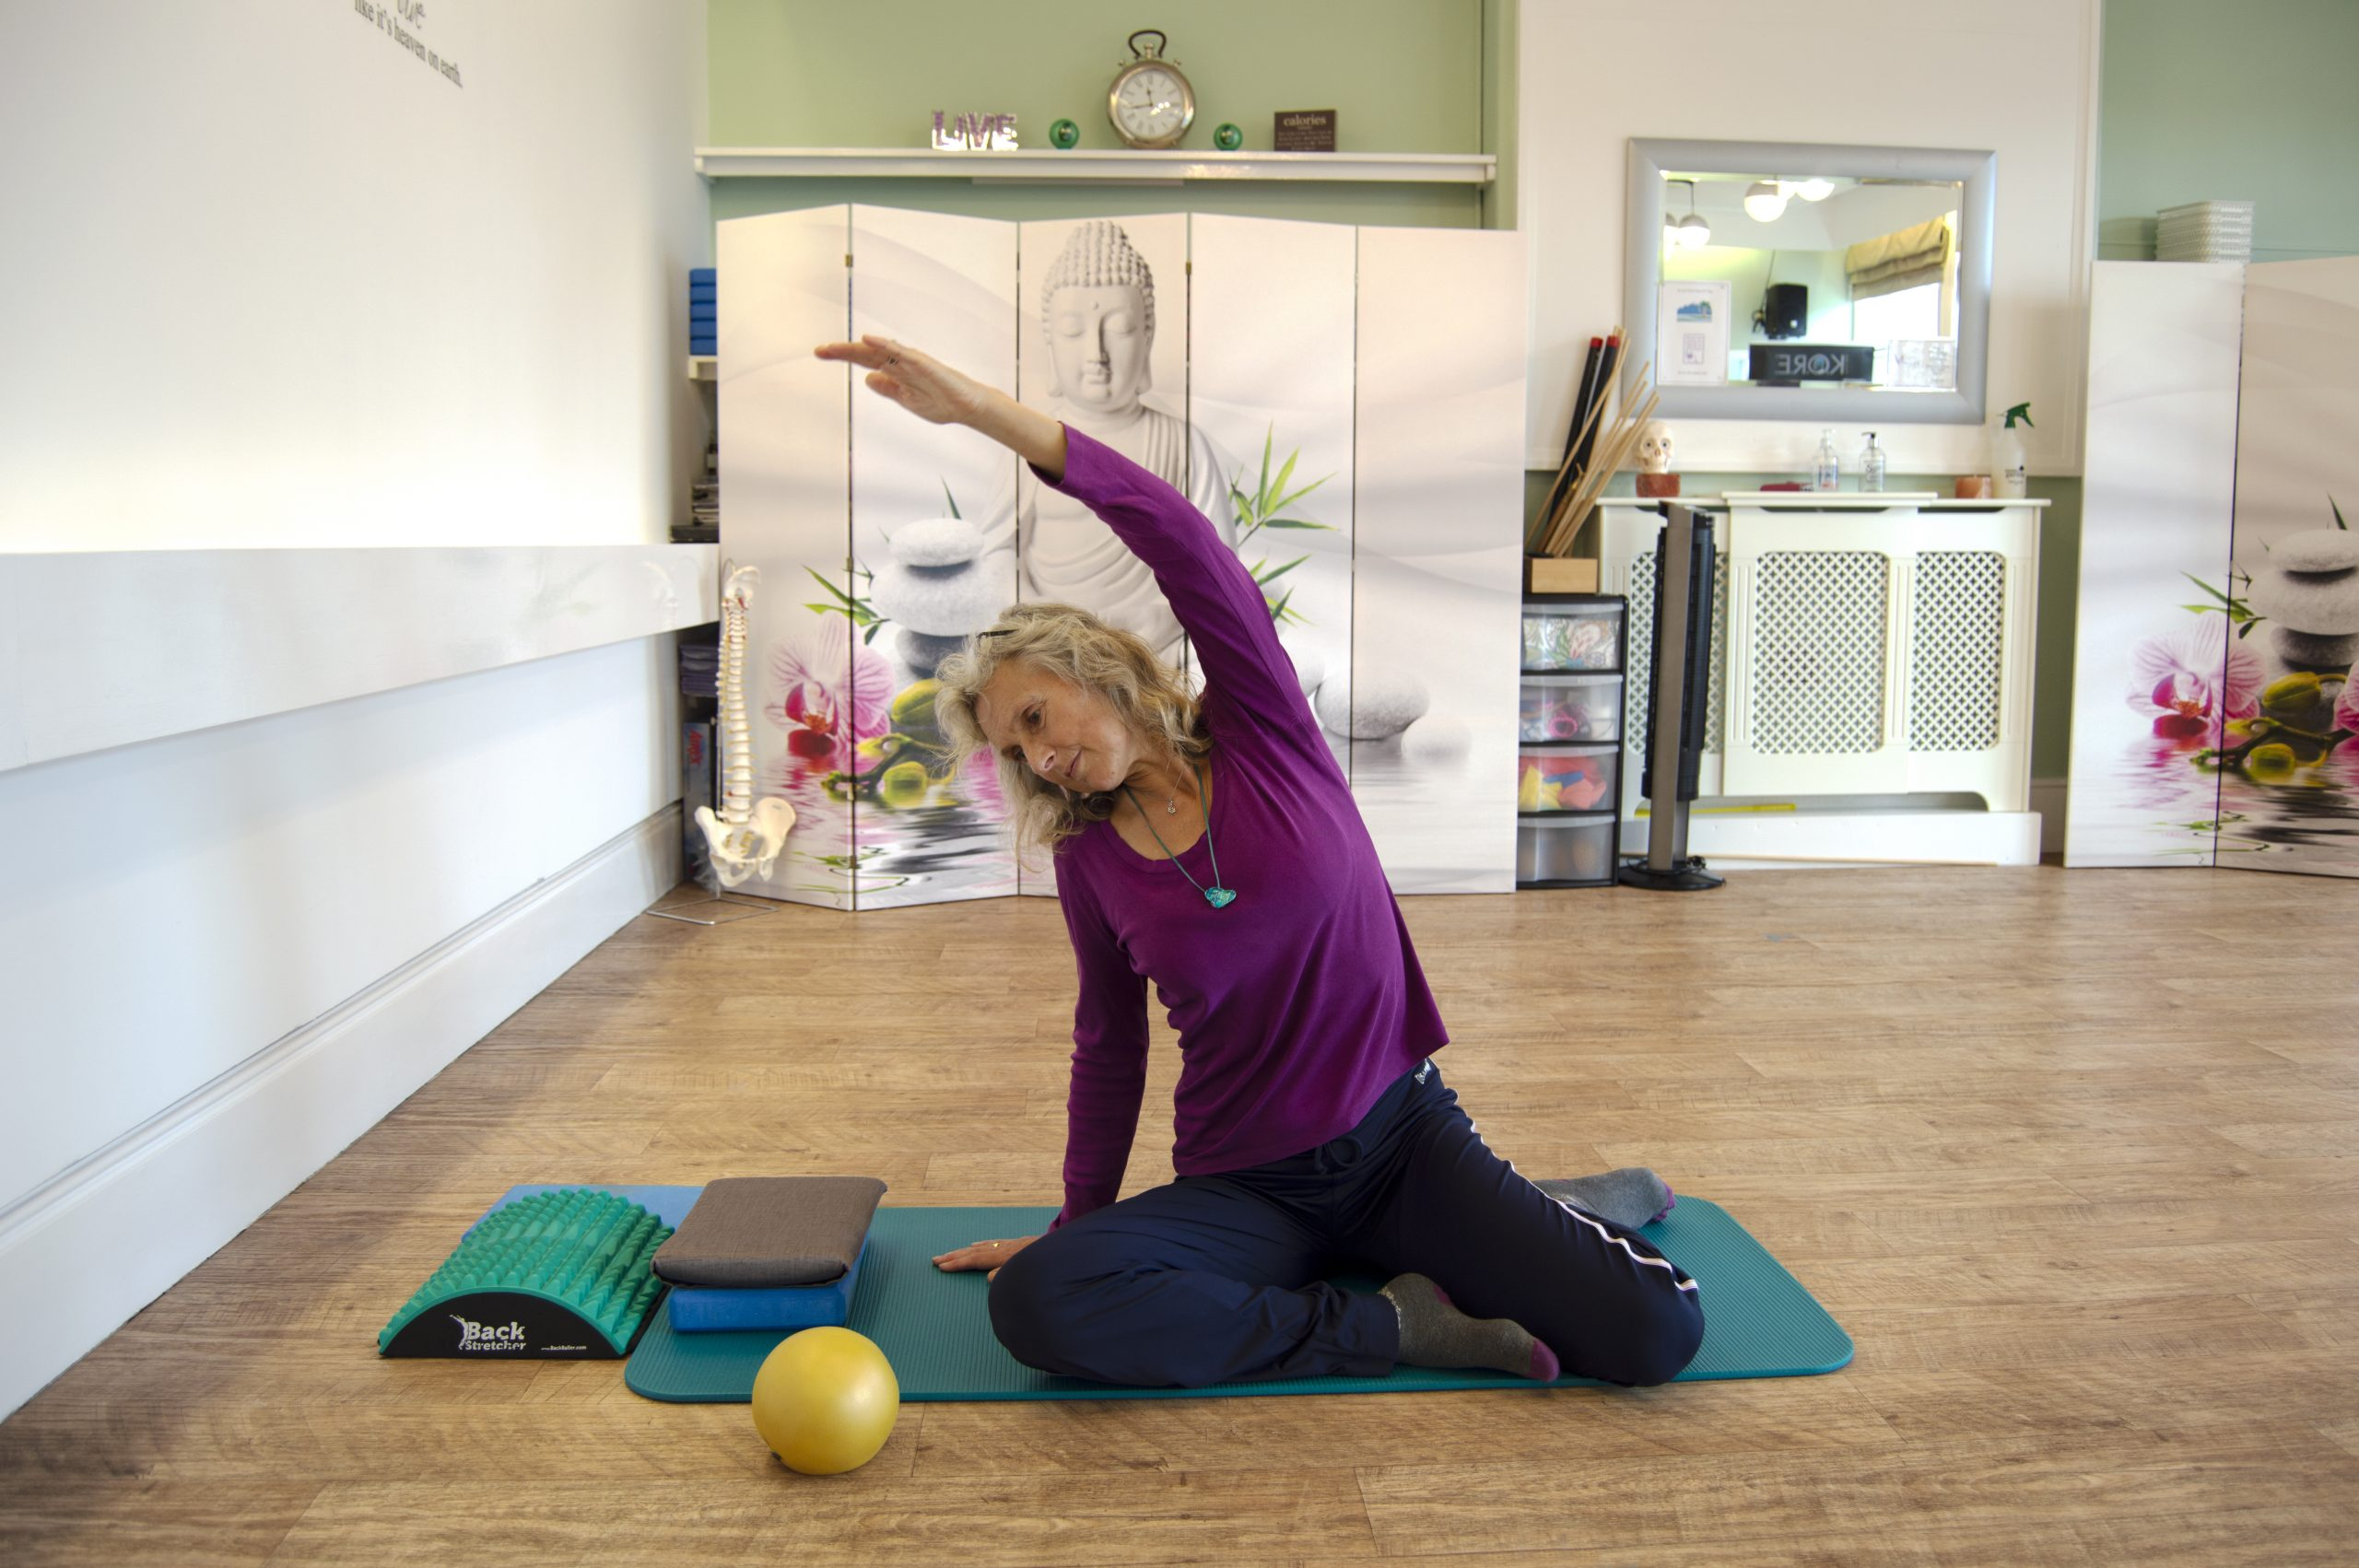 Tracey Job, Pilates Instructor, demonstrating a Pilates position